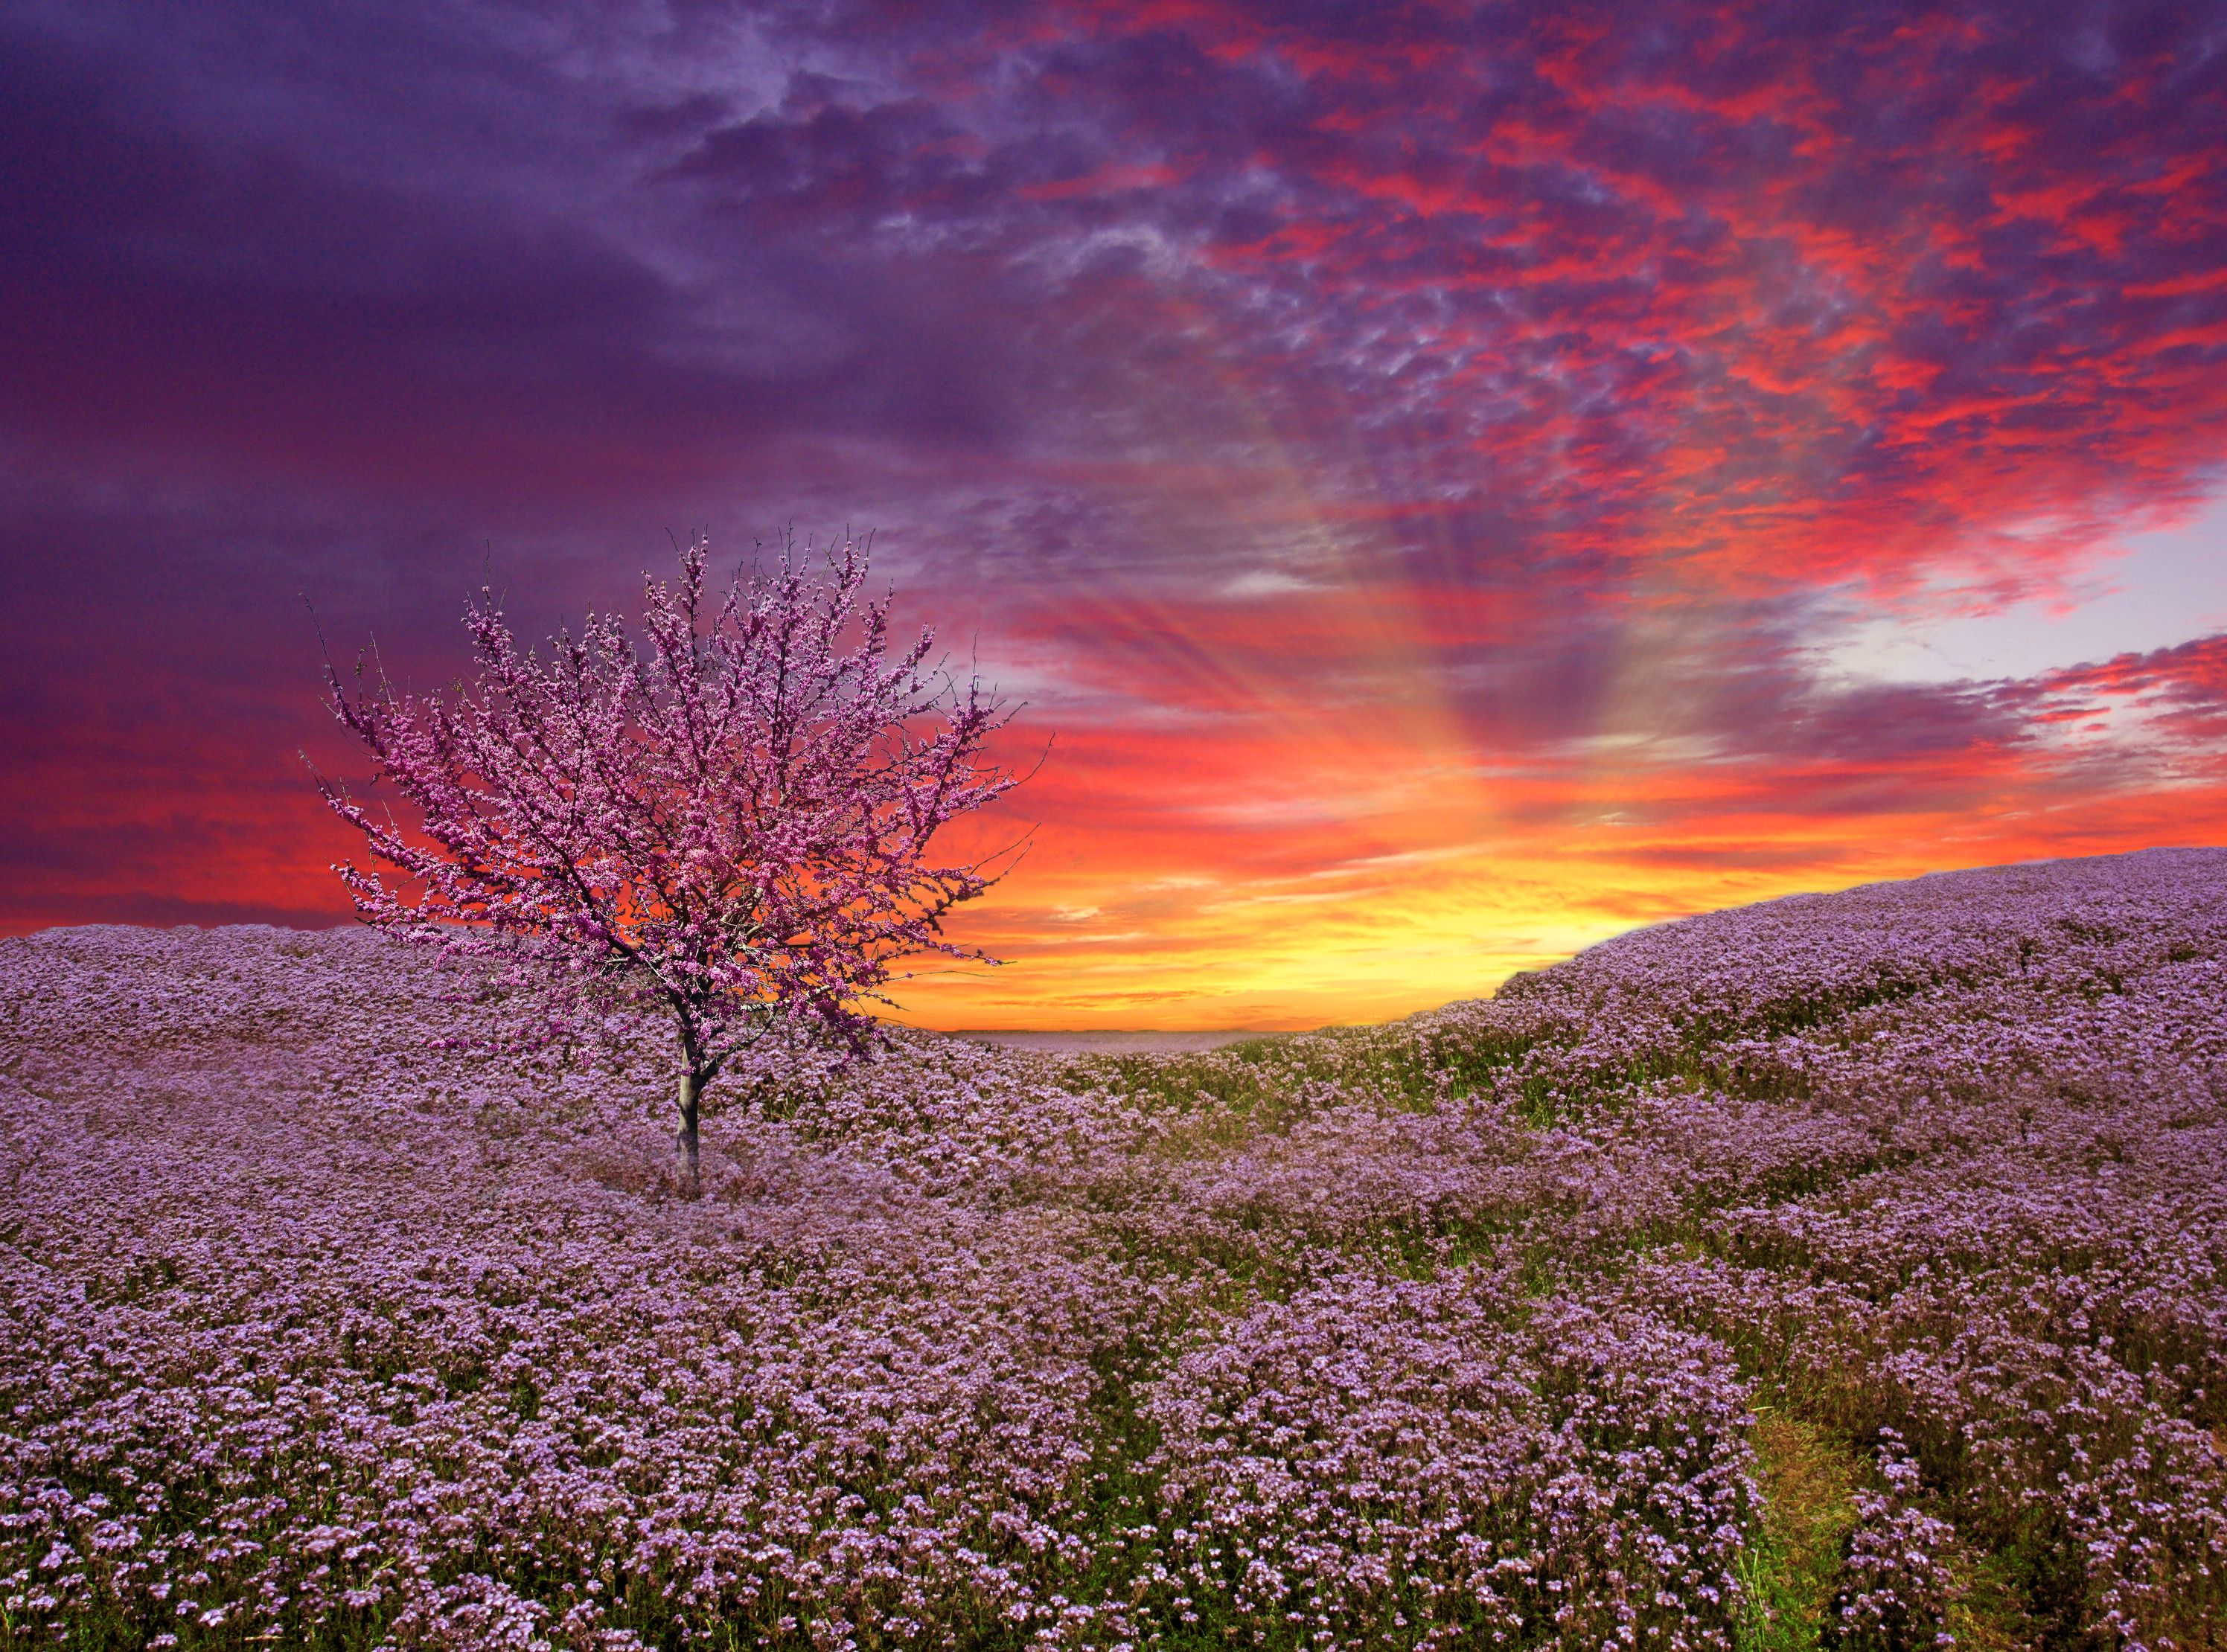 Sunset Pink And Purple Flowers And A Pink Tree Red Sky Sunset Beautiful Nature Lavender Fields Sunset Pink sky sunset sun trees nature